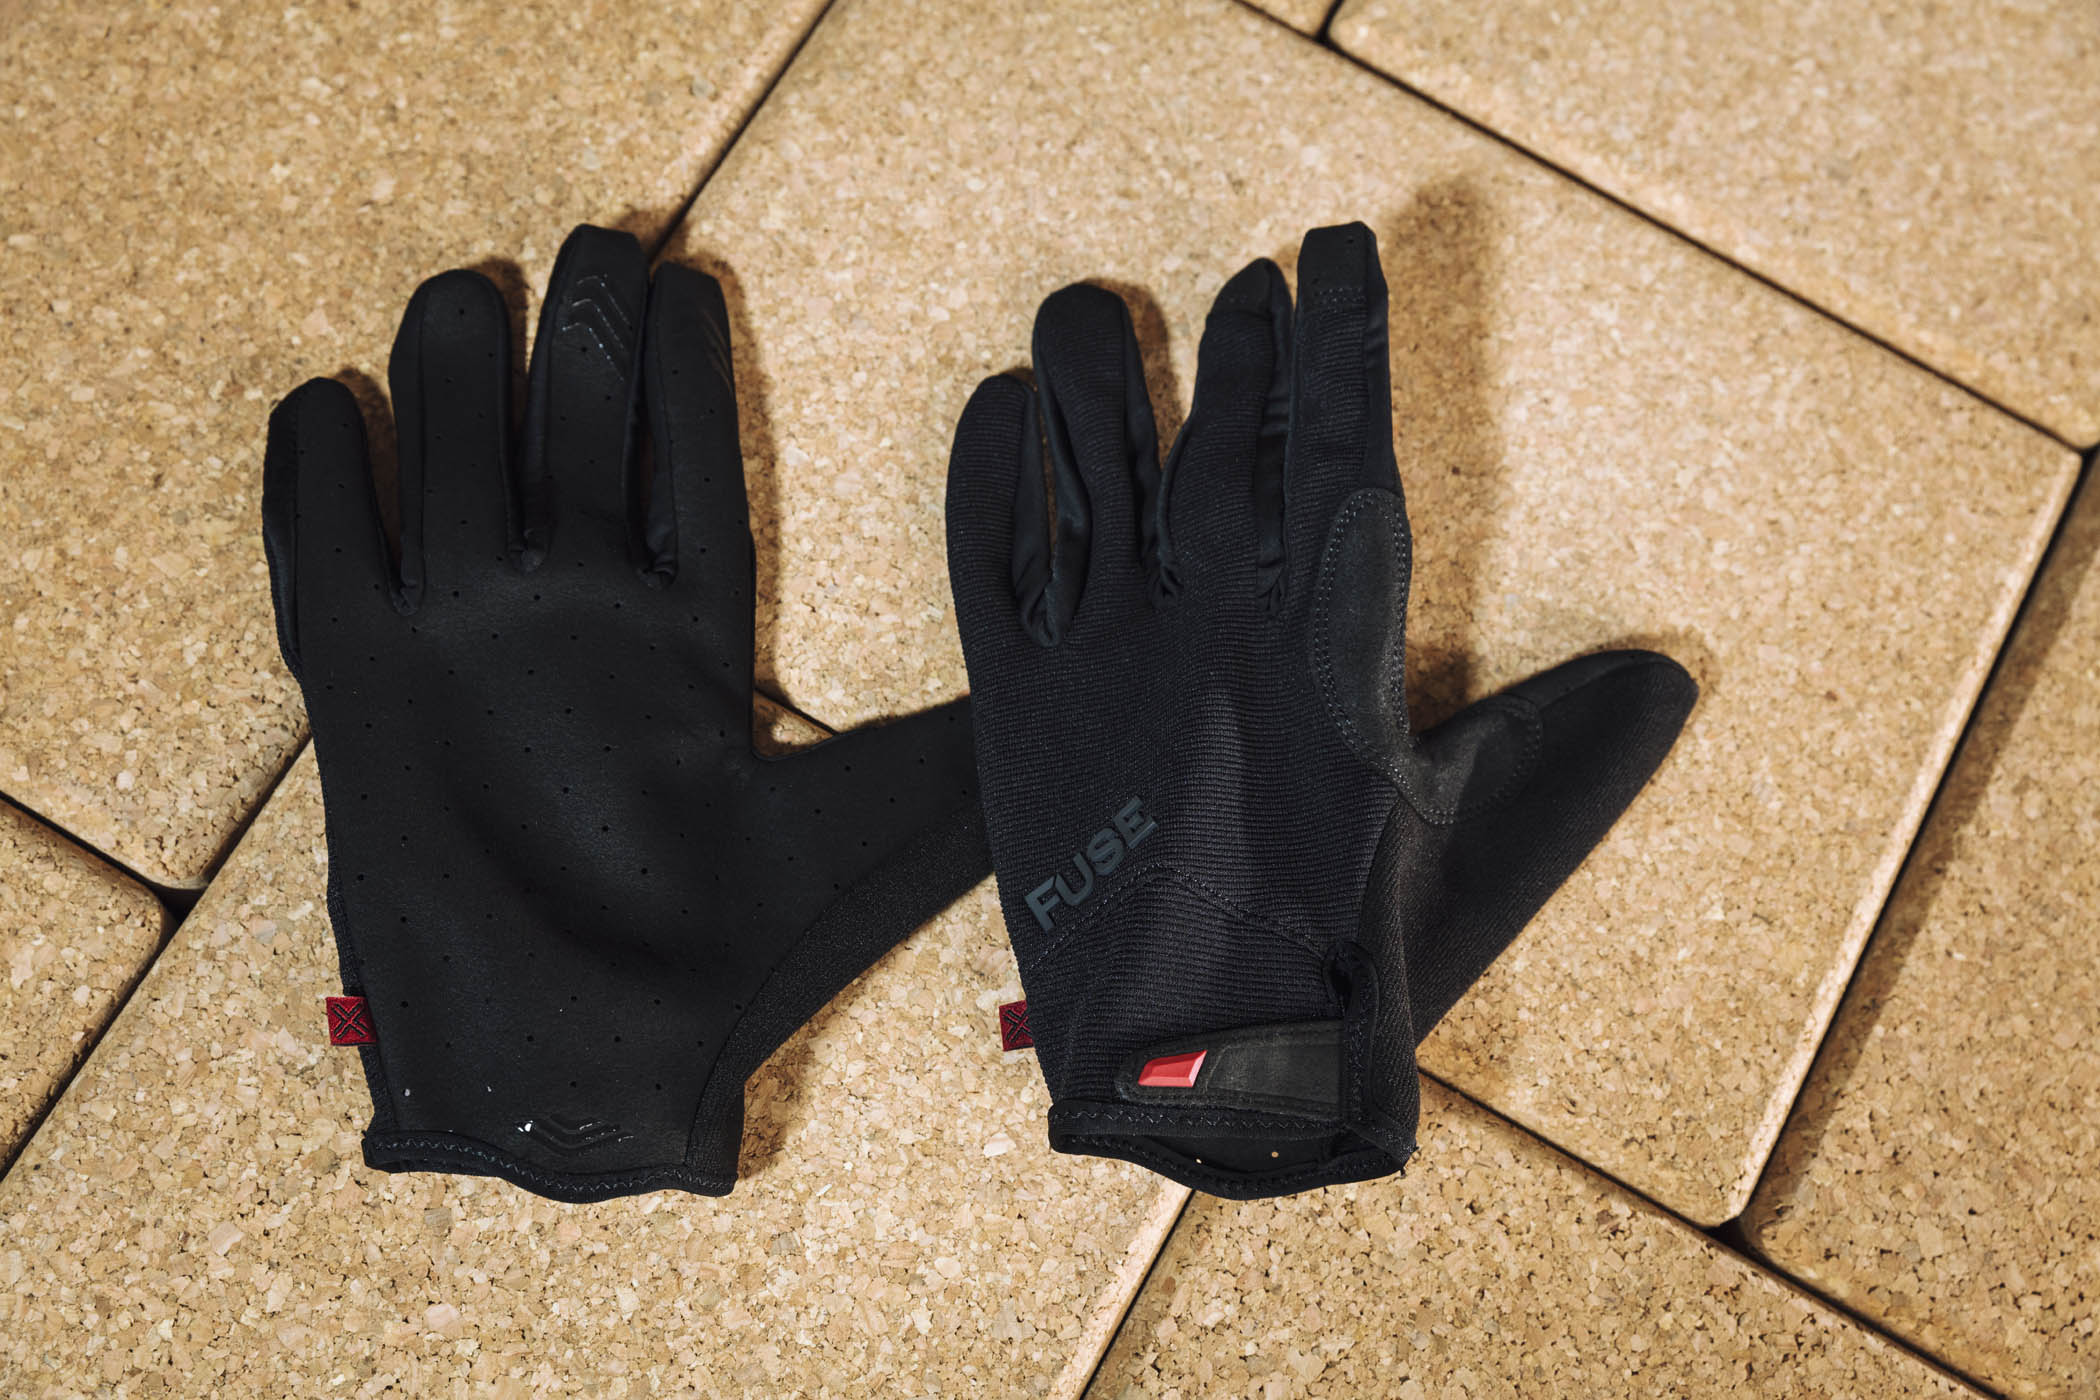 FUSE ALPHA GLOVES – REVIEW